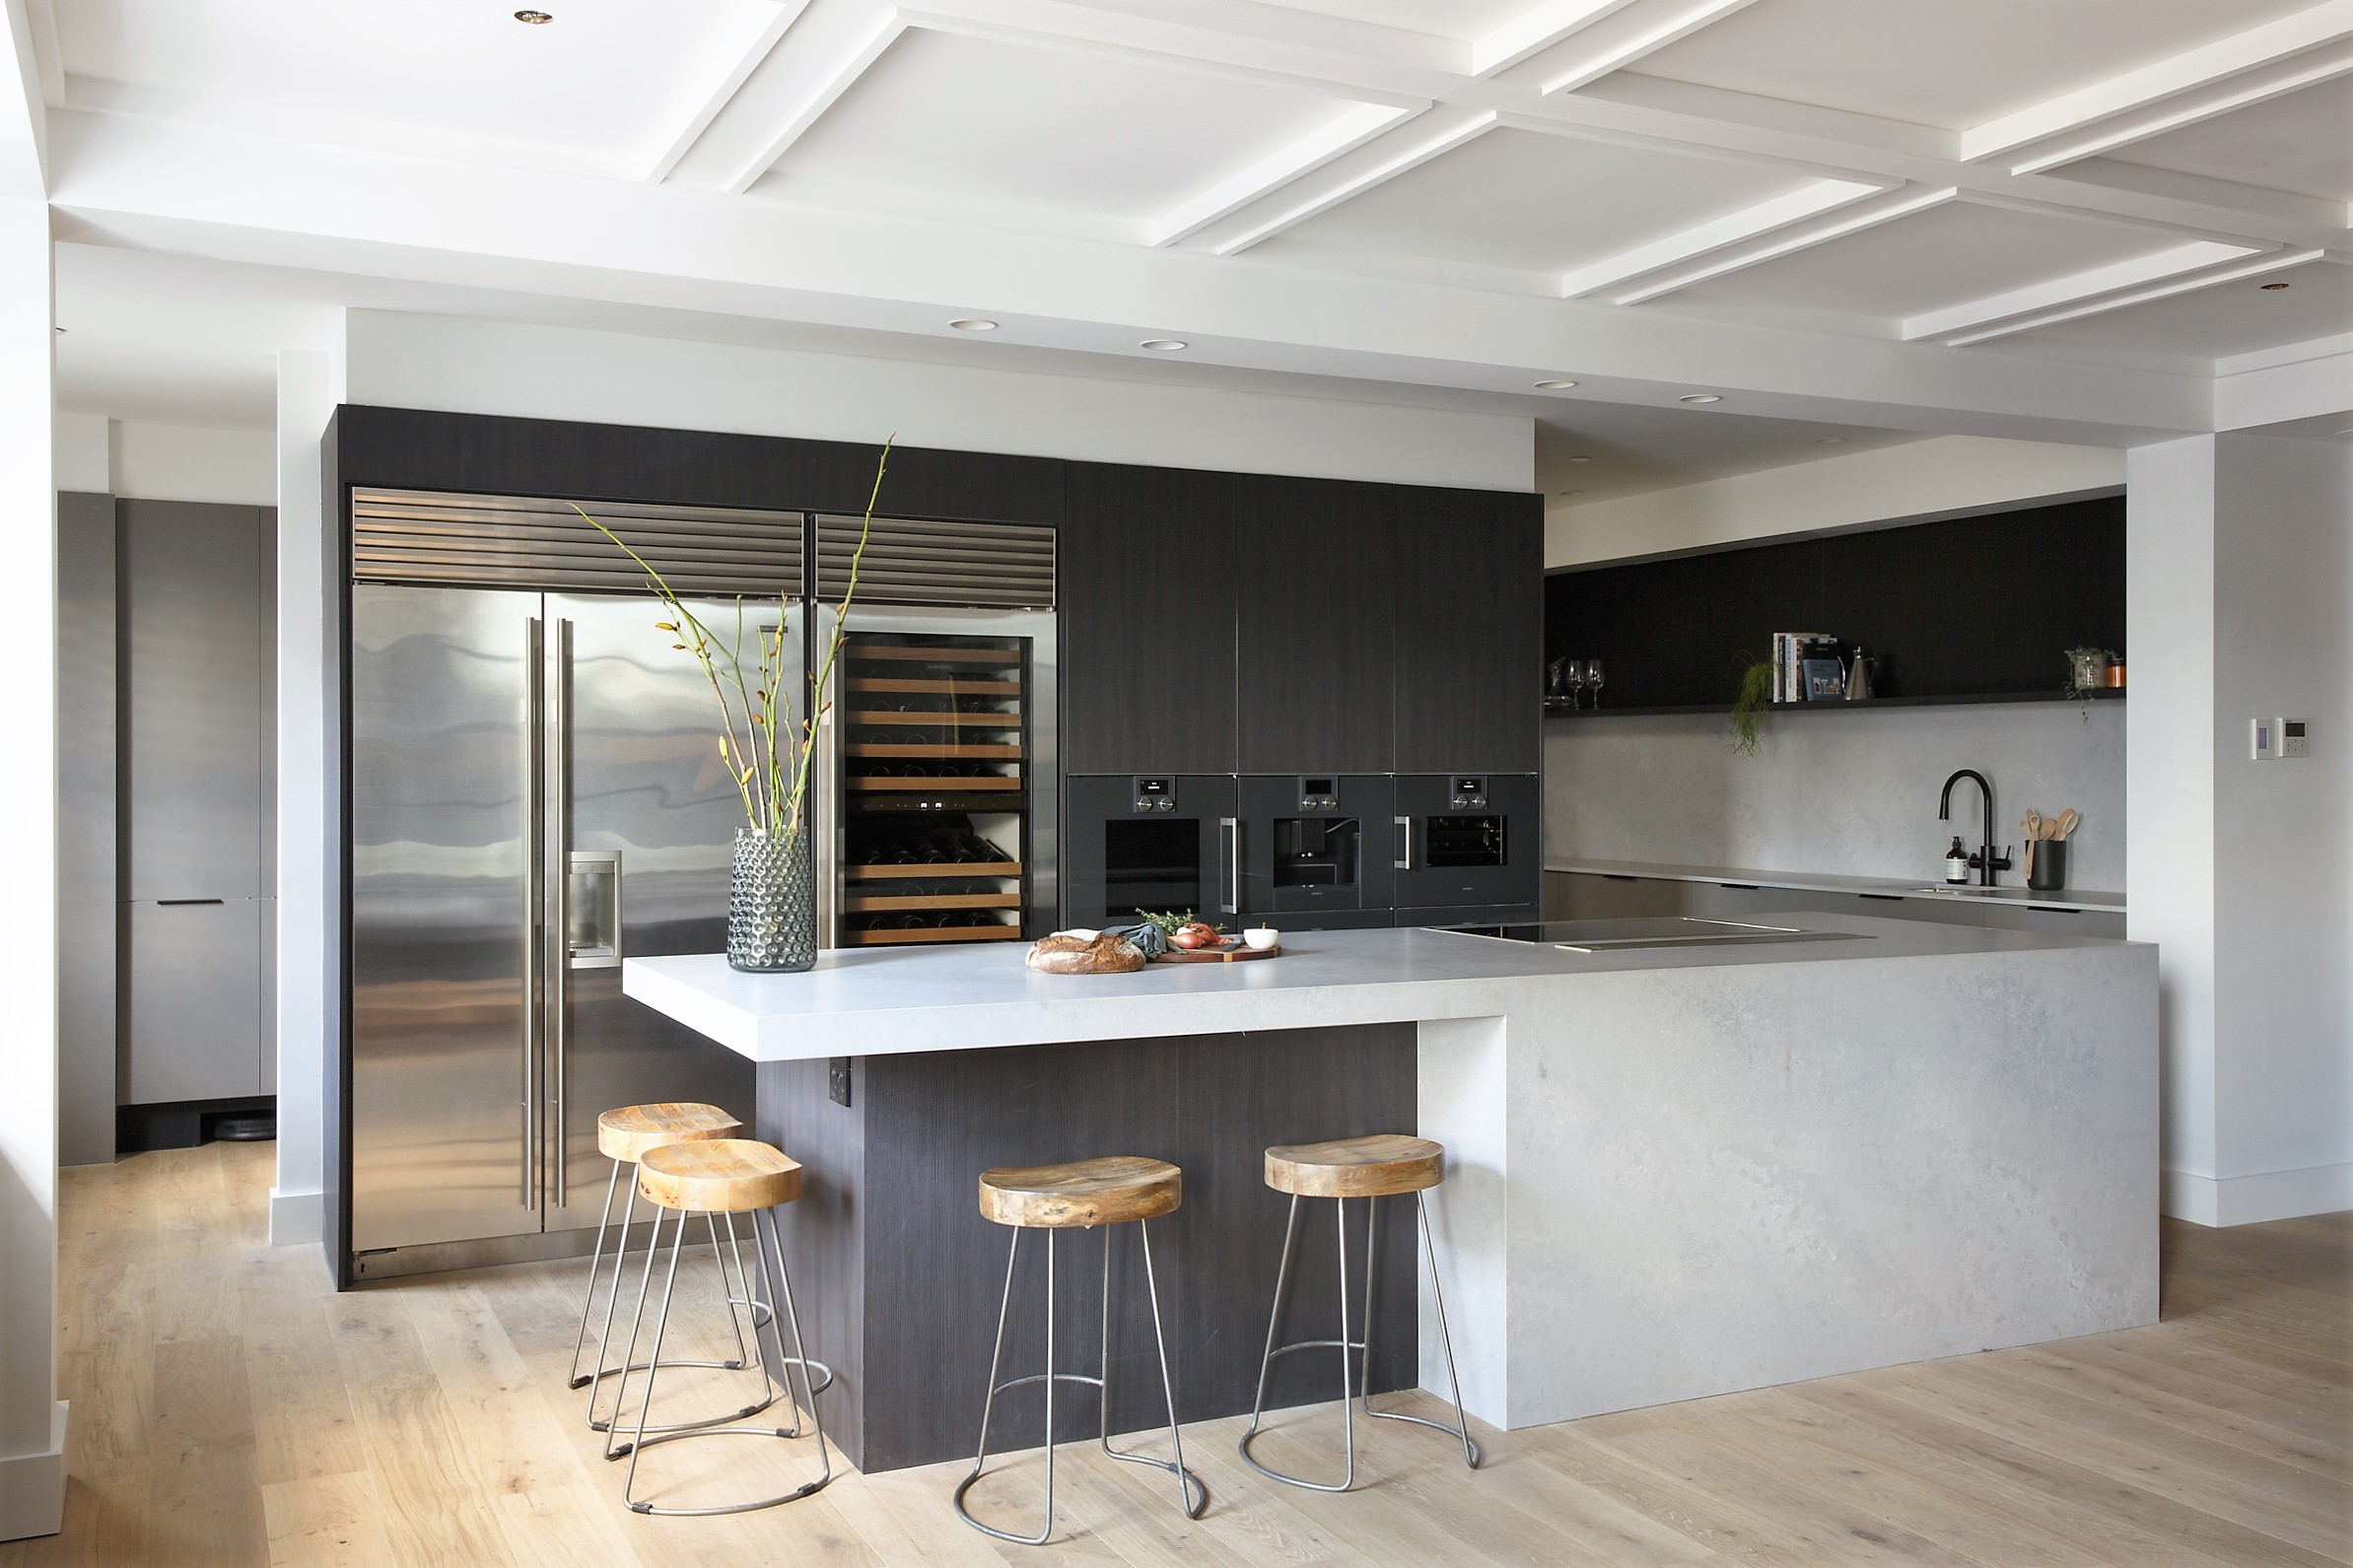 Biggest Kitchens Ever On The Block Revealed Freedom